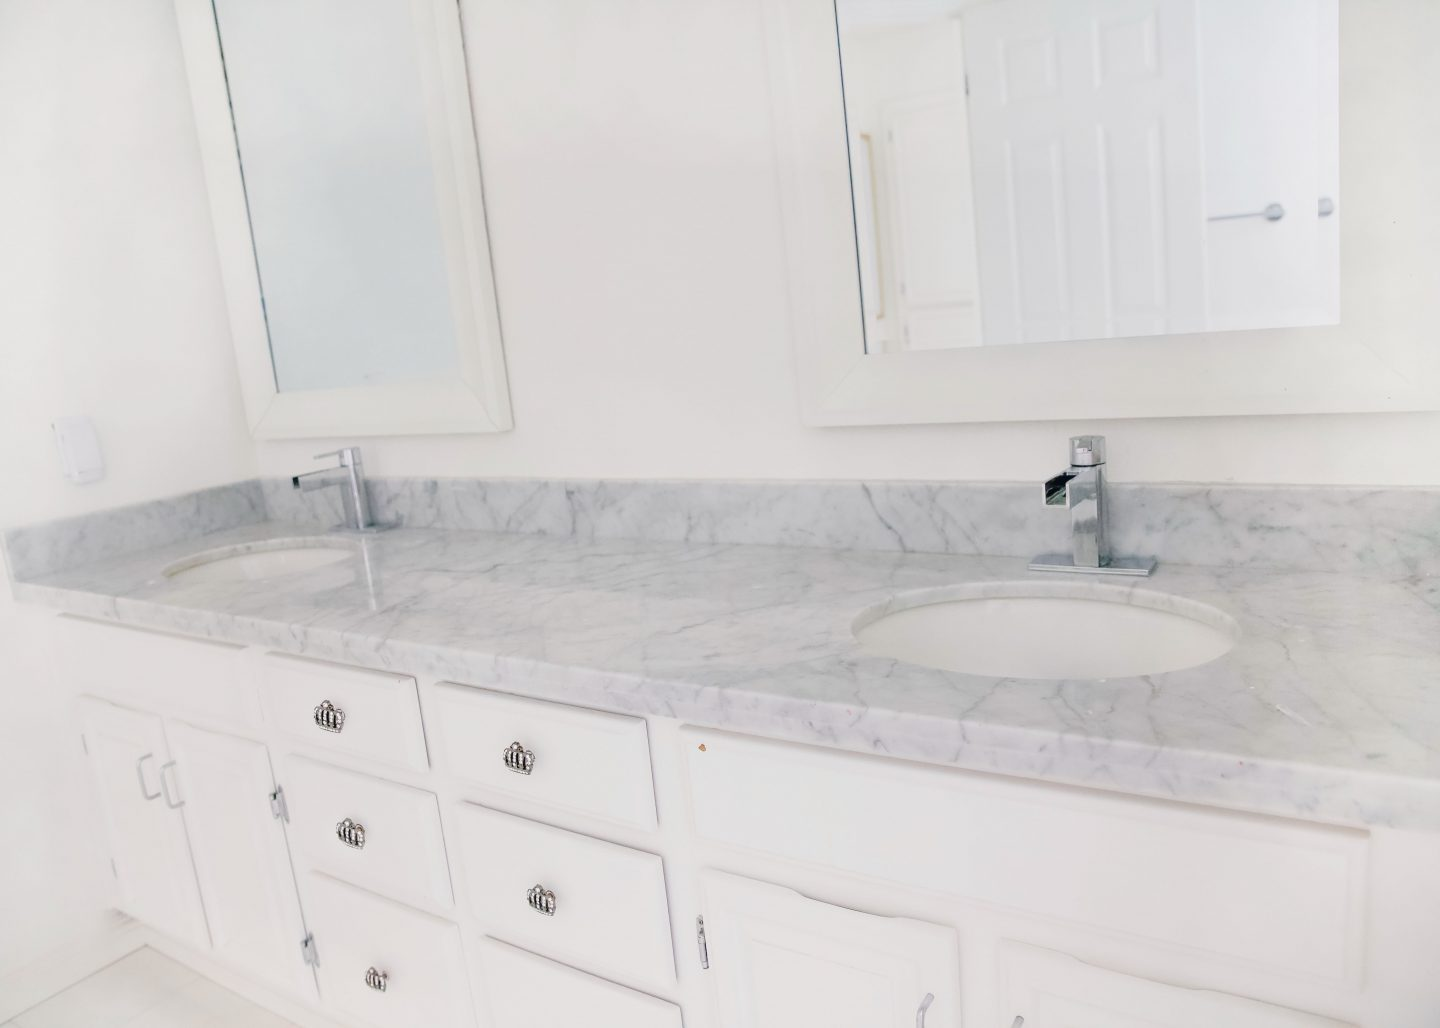 Wayfair colorful bathroom remodel before and after featured by top US lifestyle blog, Lombard and Fifth